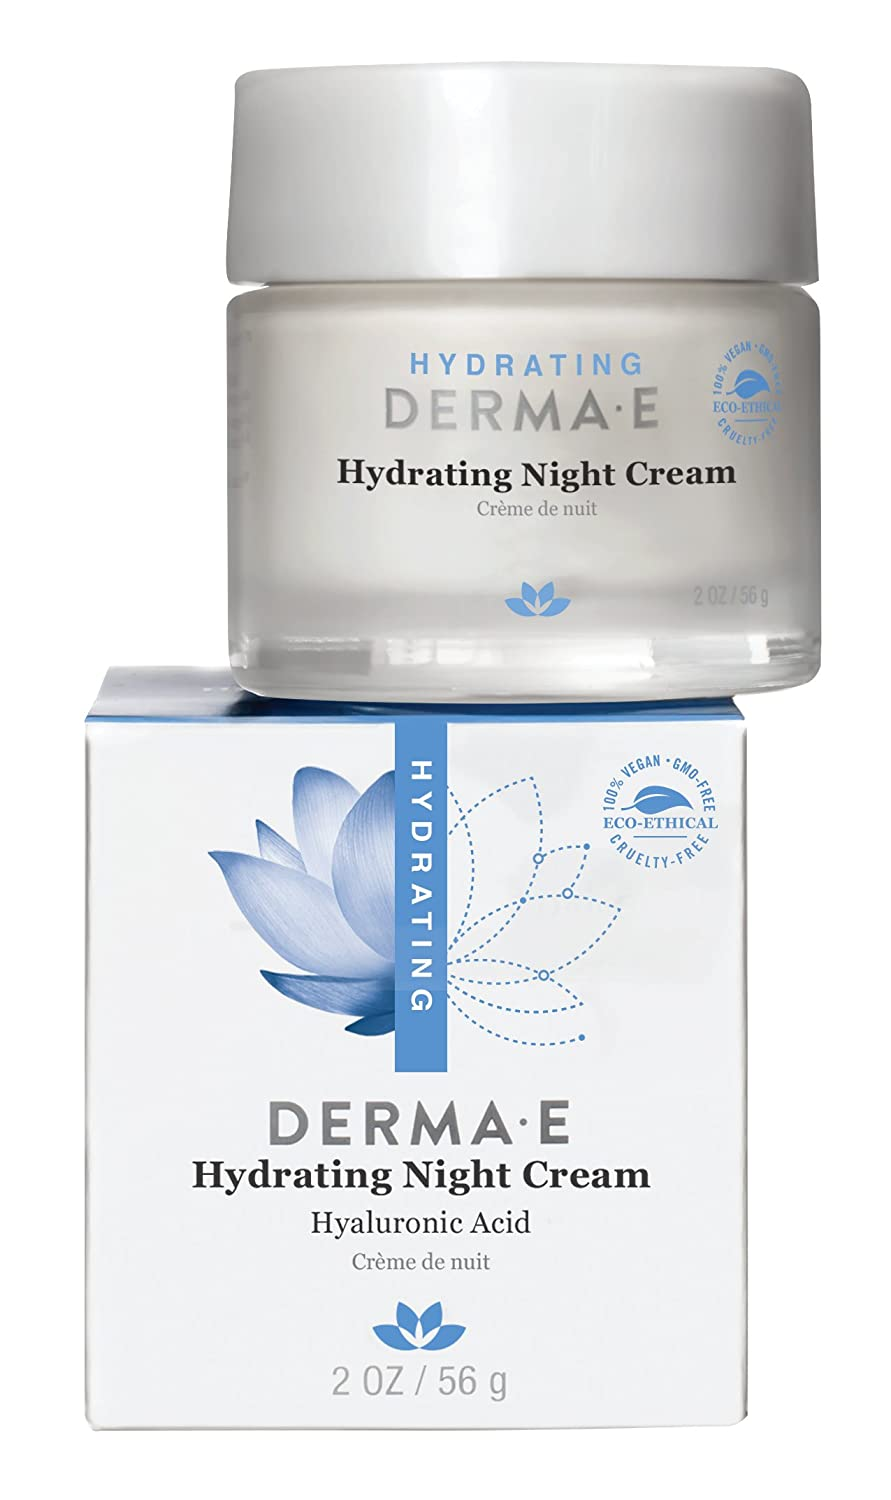 Derma E, Hydrating Night Cream, 2 oz(pack of 3) 3 Blackhead Remover Mask 3 Charcoal Peel Off Face Mask that Remove Blackheads, Clean Pores, Absorb Excess Oil Guaranteed, NutraHerb USA is an FDA Registered Manufacturer Gently Peel Away Blackheads